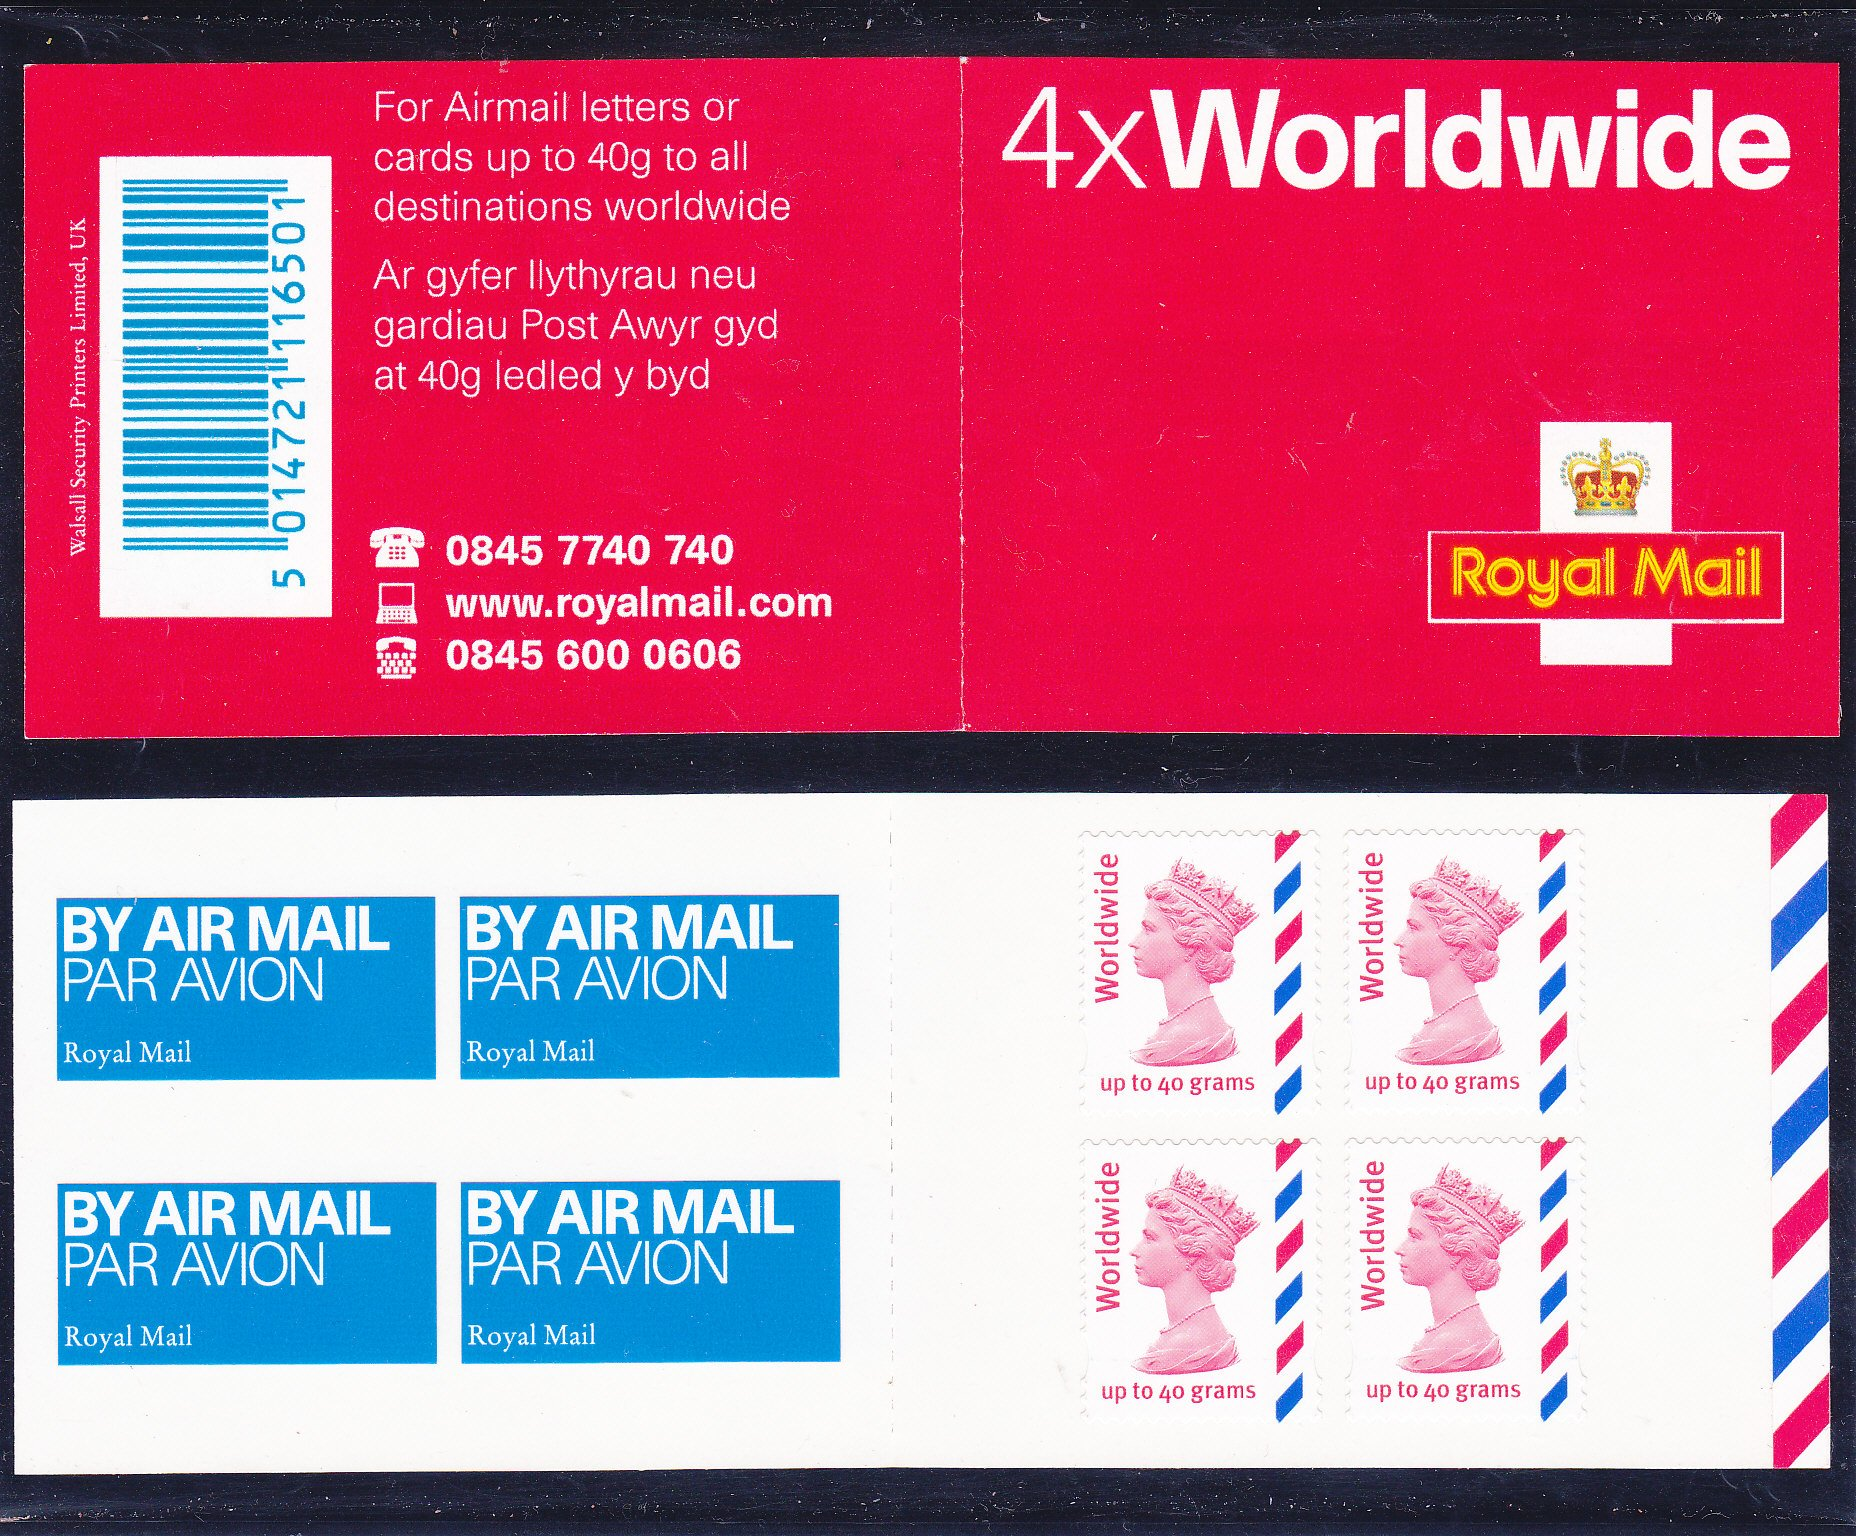 Booklet Airmail MJ2 Worldwide Plain 2004